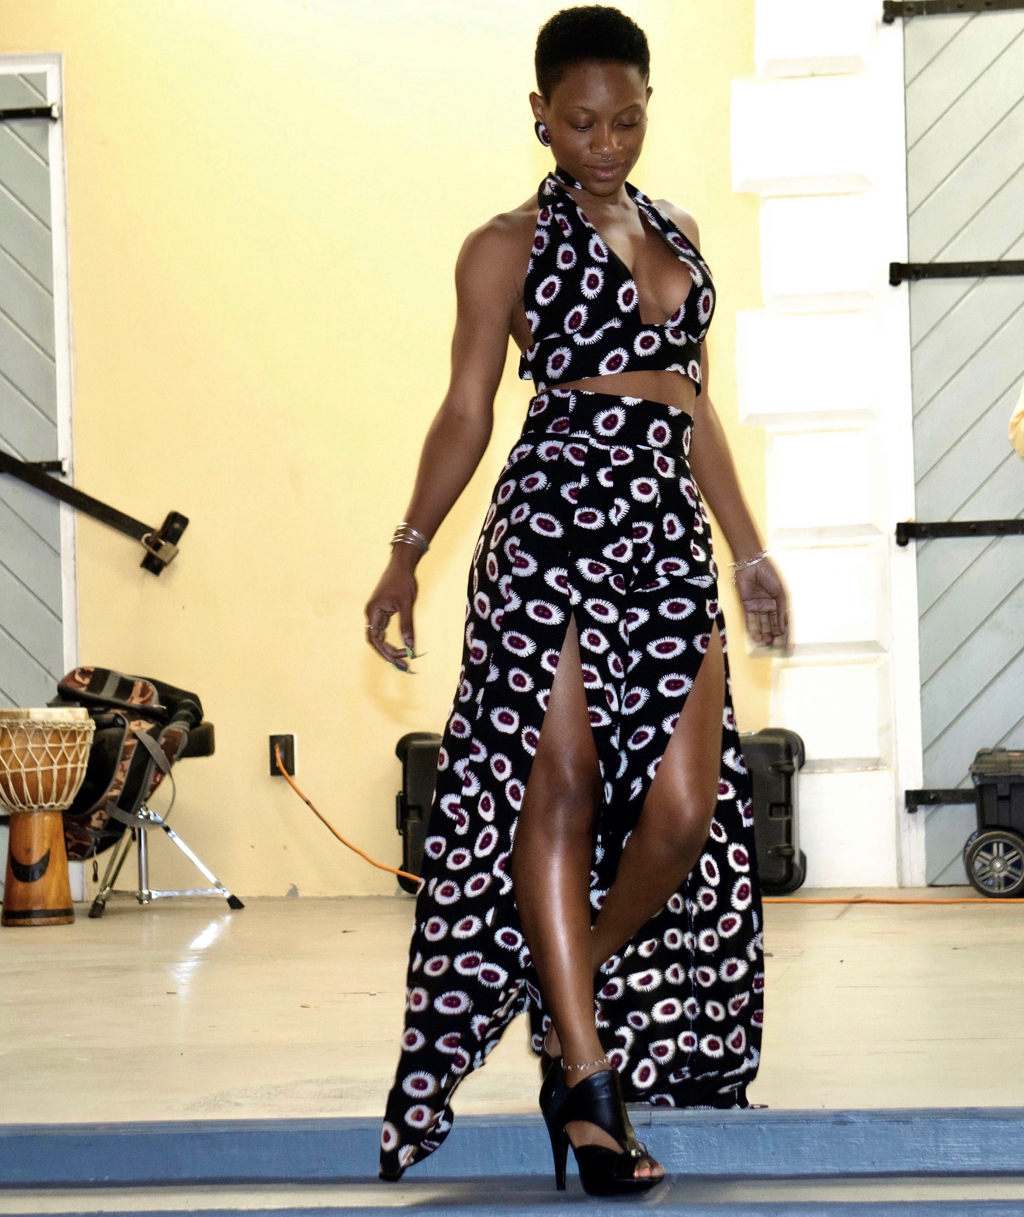 """Kezia """"Kizee"""" Sylvester of Royal Modeling Agency, managed by Christopher Rivera, models a floor length African print original by Giana """"Regal"""" Christopher, who is a self-taught seamstress, also works in madras, owns and operates Regal Fashions since 2012.. (Submitted photo)"""